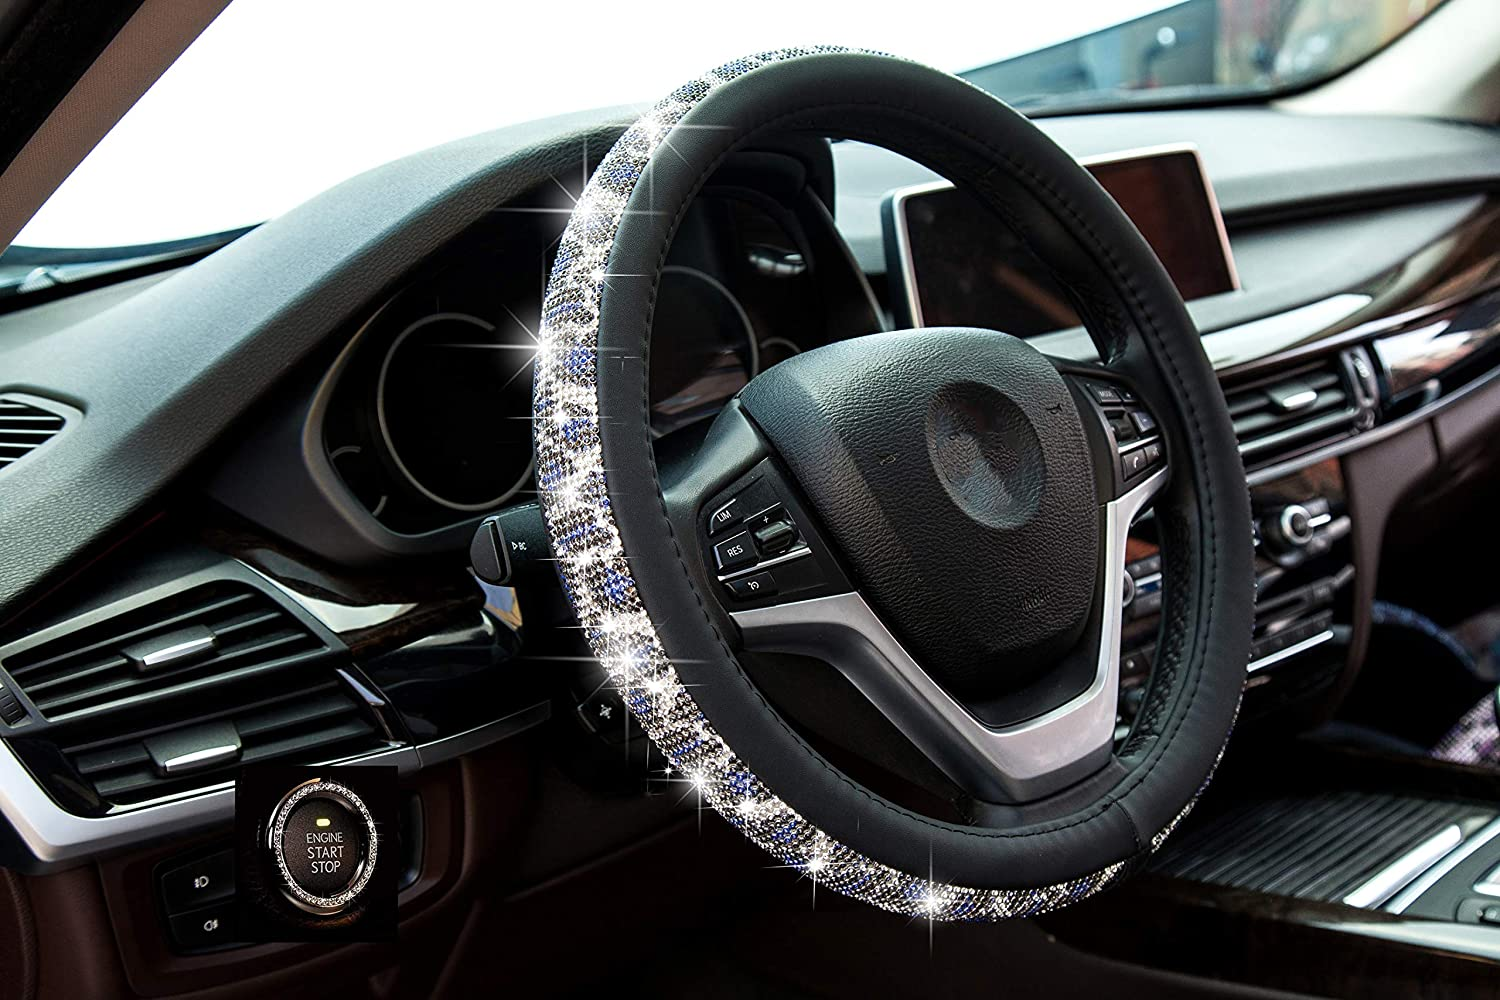 Crystal Steering Wheel Cover, Leather Surface Bling Bling Rhinestone, Black Universal 15-inch Protector for Female Girls. (Bling Black White Blue)